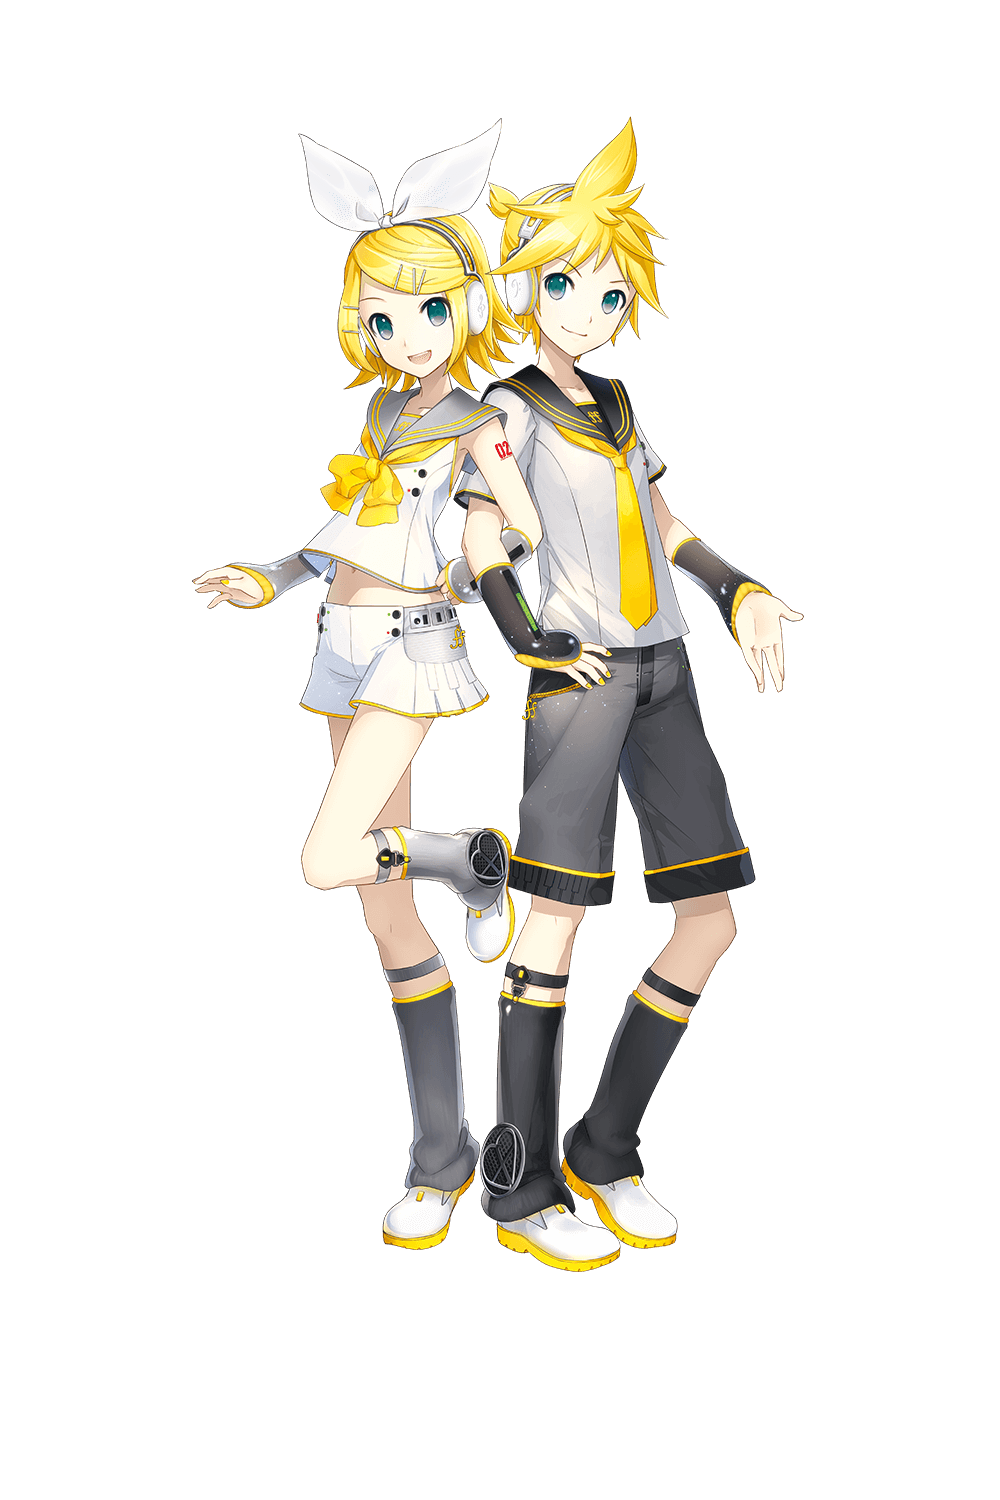 img_illust_rinlenv4x_20151120181649a86.png